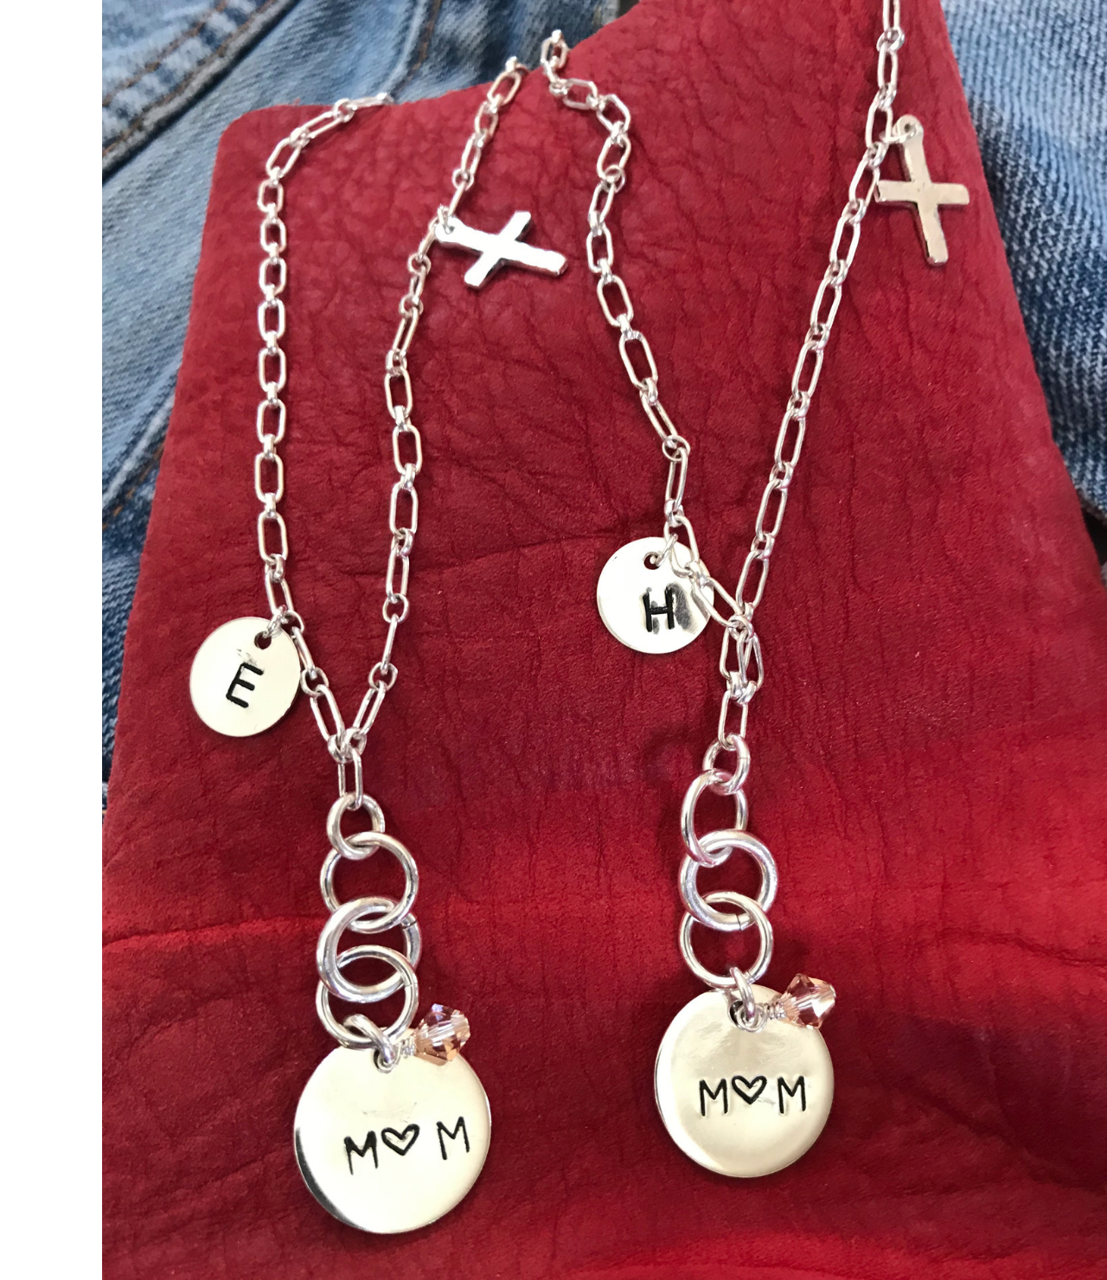 two-Sterling-silver-chain-mom-charm-necklaces-on-red-leather-and-denim-background